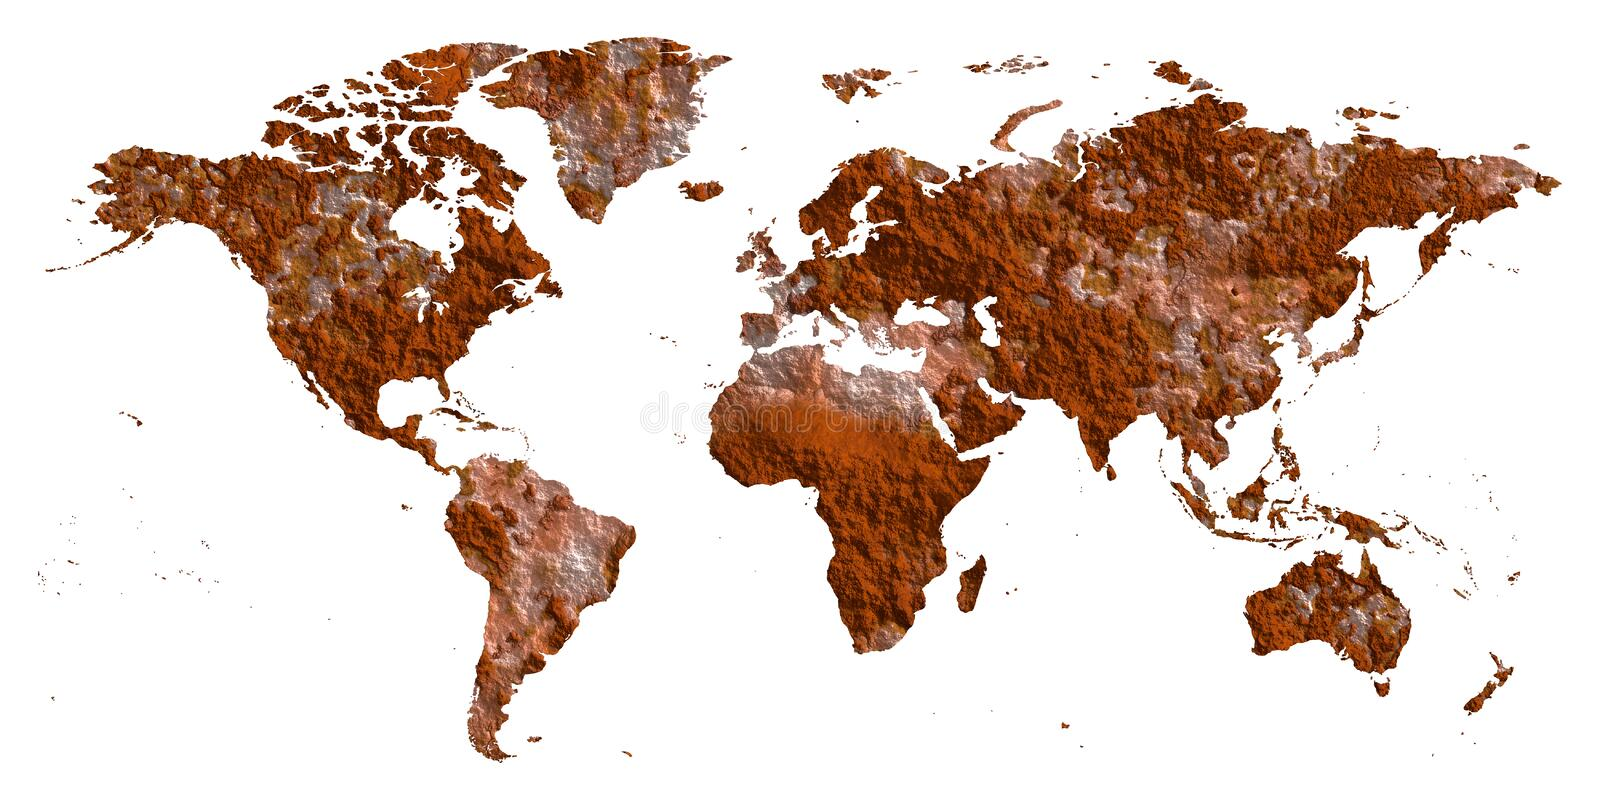 Rust world map flat earth stock photo illustration of death 70918802 download rust world map flat earth stock photo illustration of death 70918802 gumiabroncs Image collections